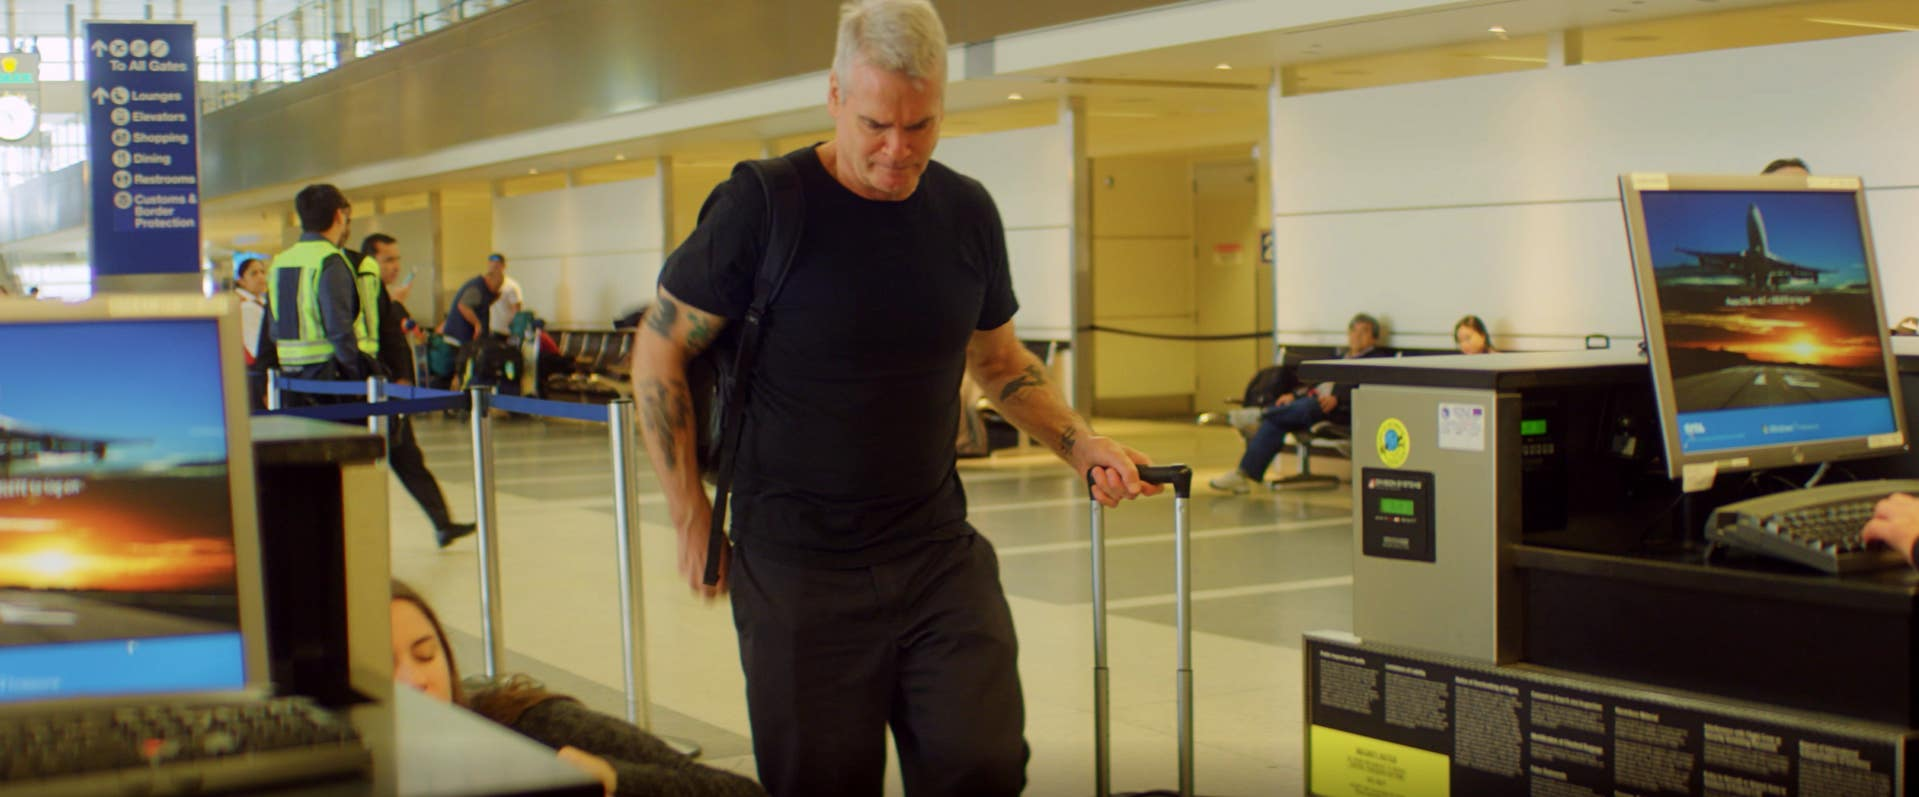 Henry Rollins packs light and weighs his luggage at Tom Bradley International in LAX